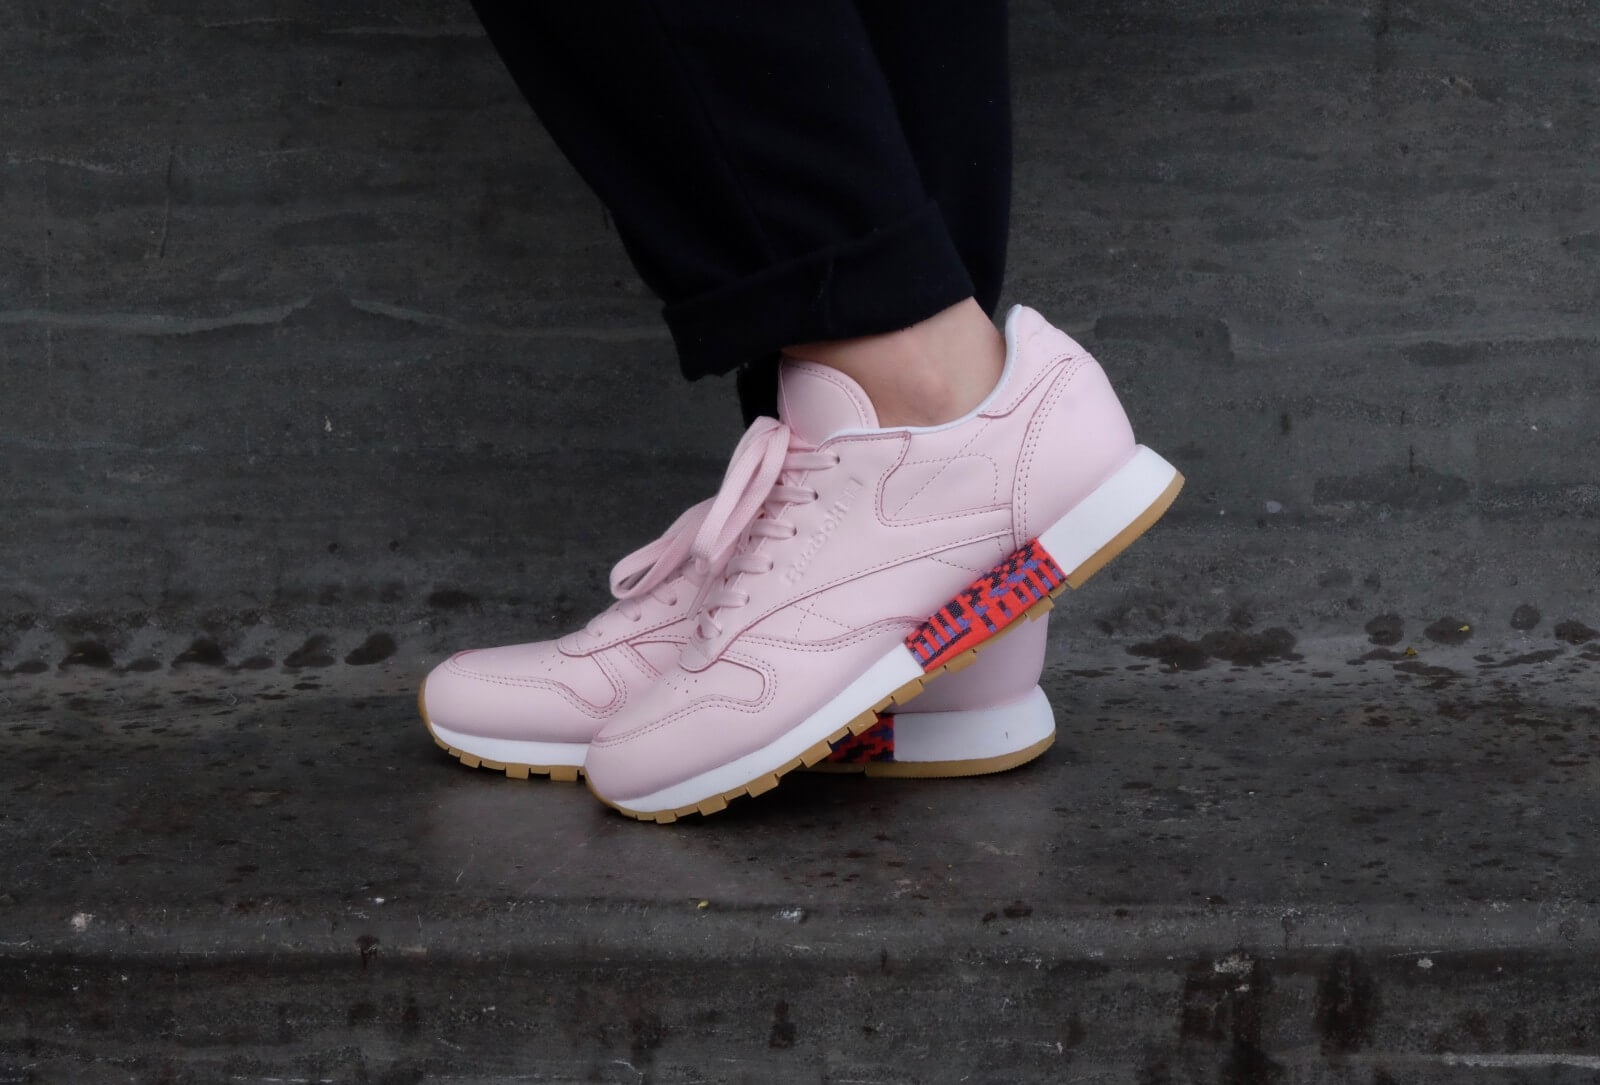 Reebok Classic Leather Old Meets New Porcelain Pink White Gum BD3155